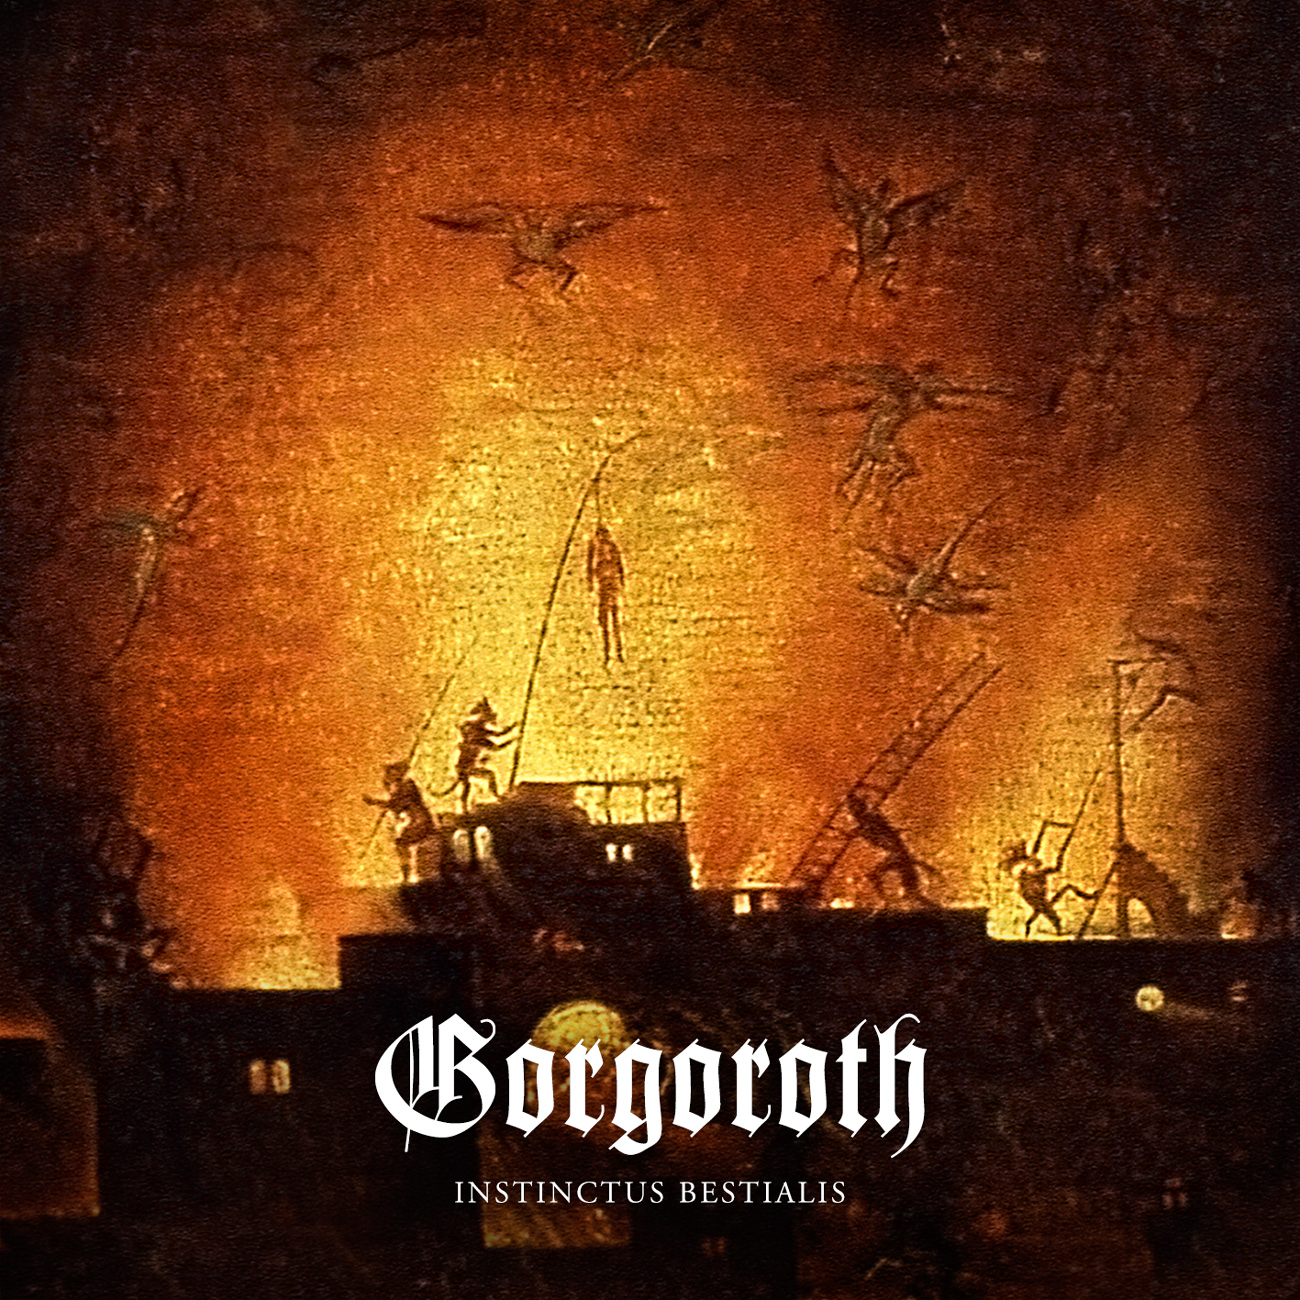 You are currently viewing Gorgoroth <br/>Instinctus Bestialis